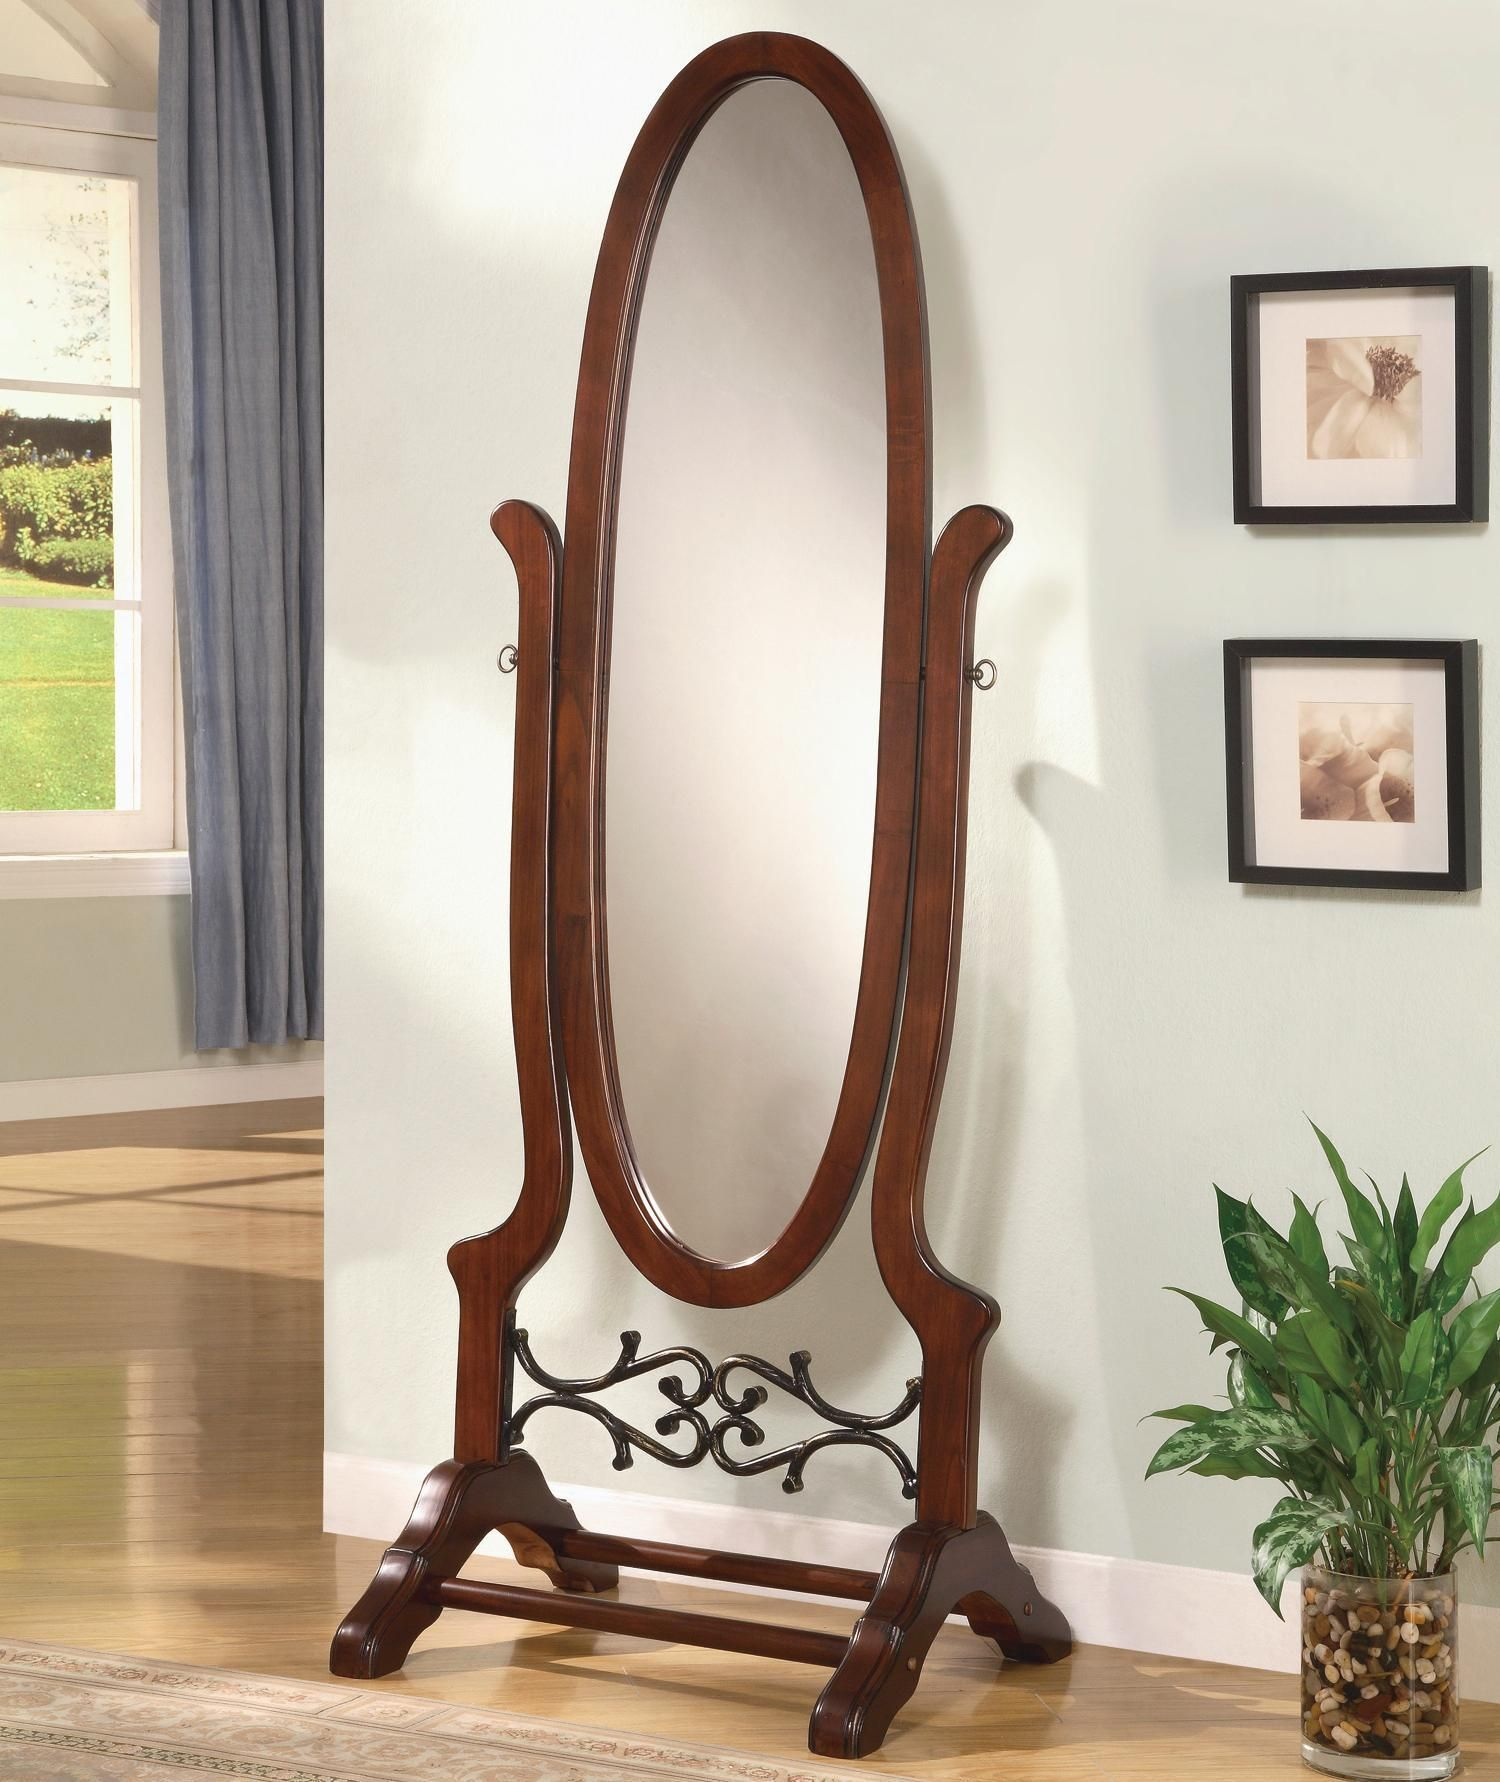 Coaster Walnut Traditional Accent Mirror In 2019 | Products With Regard To Traditional Accent Mirrors (View 22 of 30)